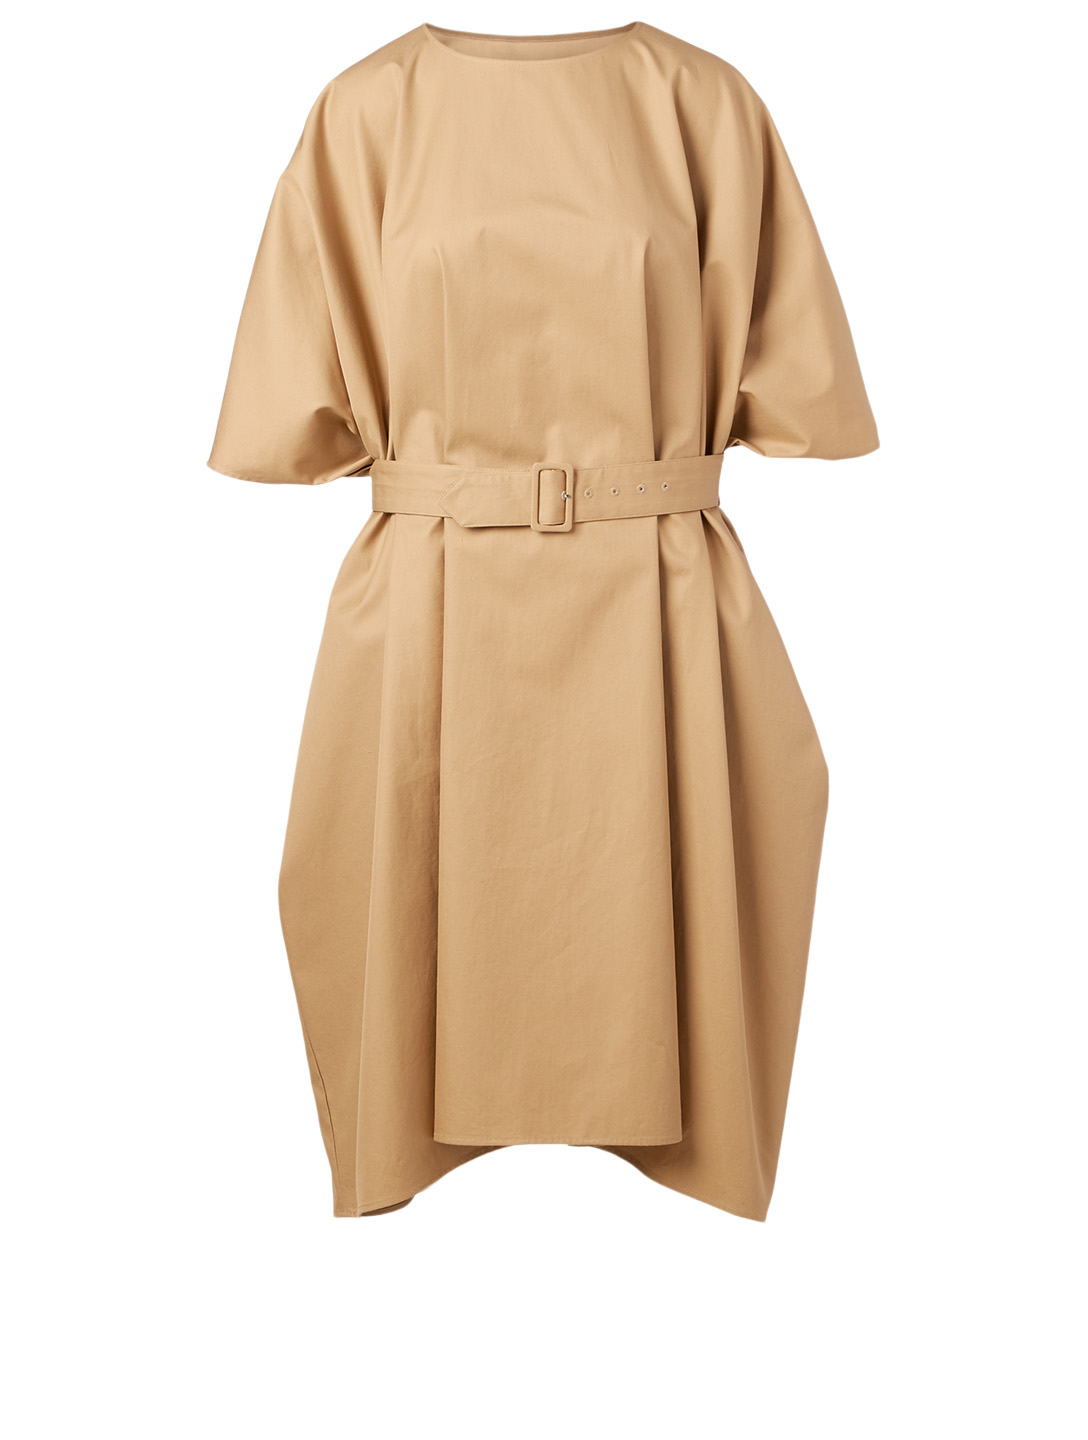 MM6 MAISON MARGIELA Cotton Dress With Belt Women's Beige